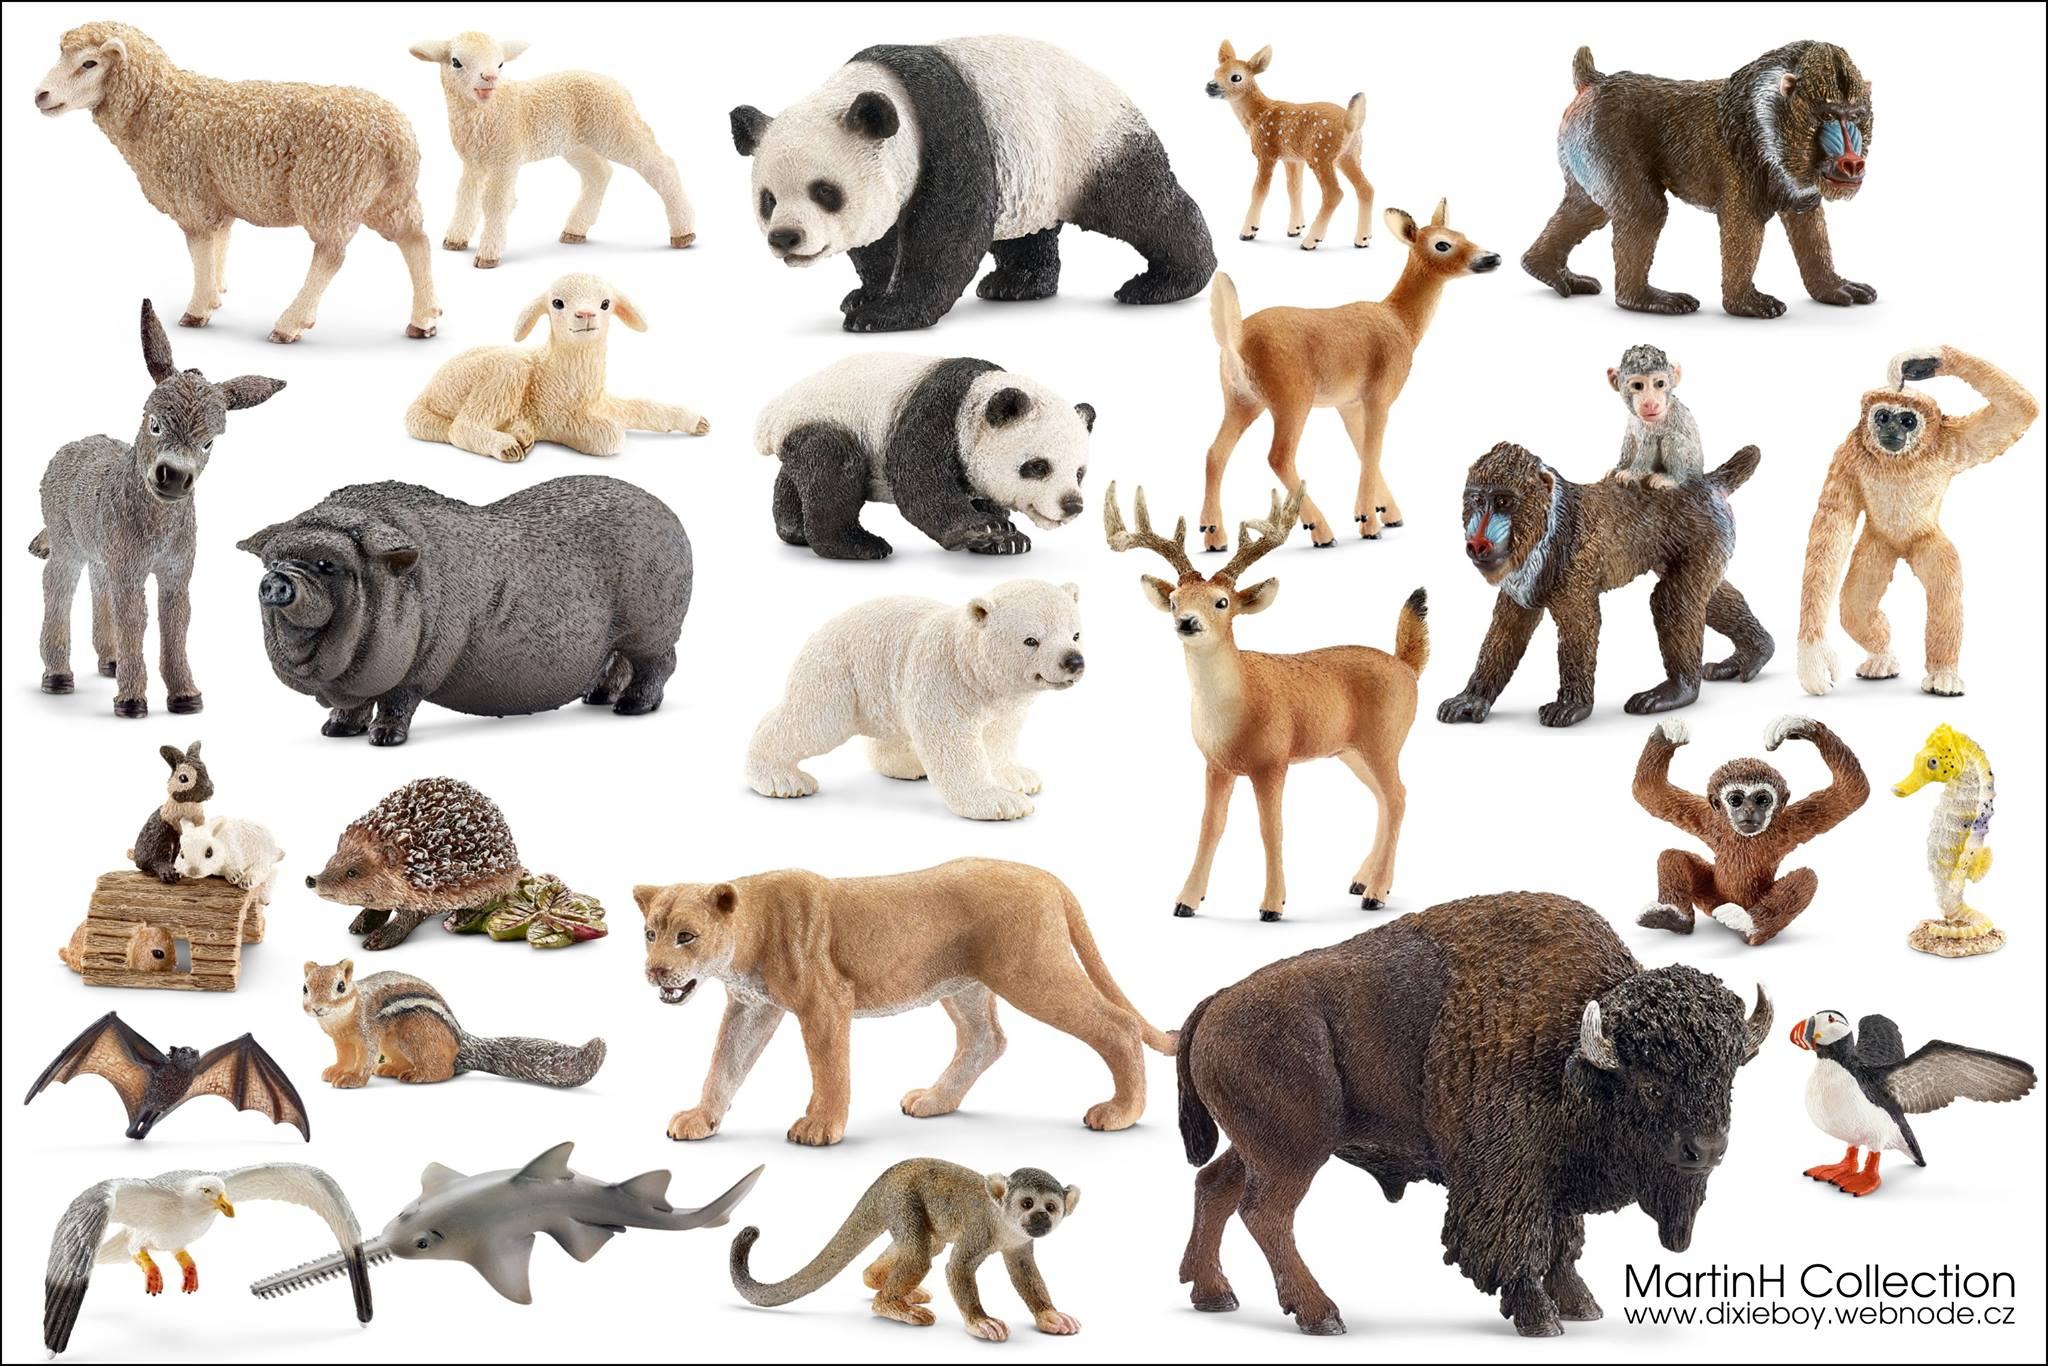 schleich 2014 collecting animal figures schleich et al. Black Bedroom Furniture Sets. Home Design Ideas